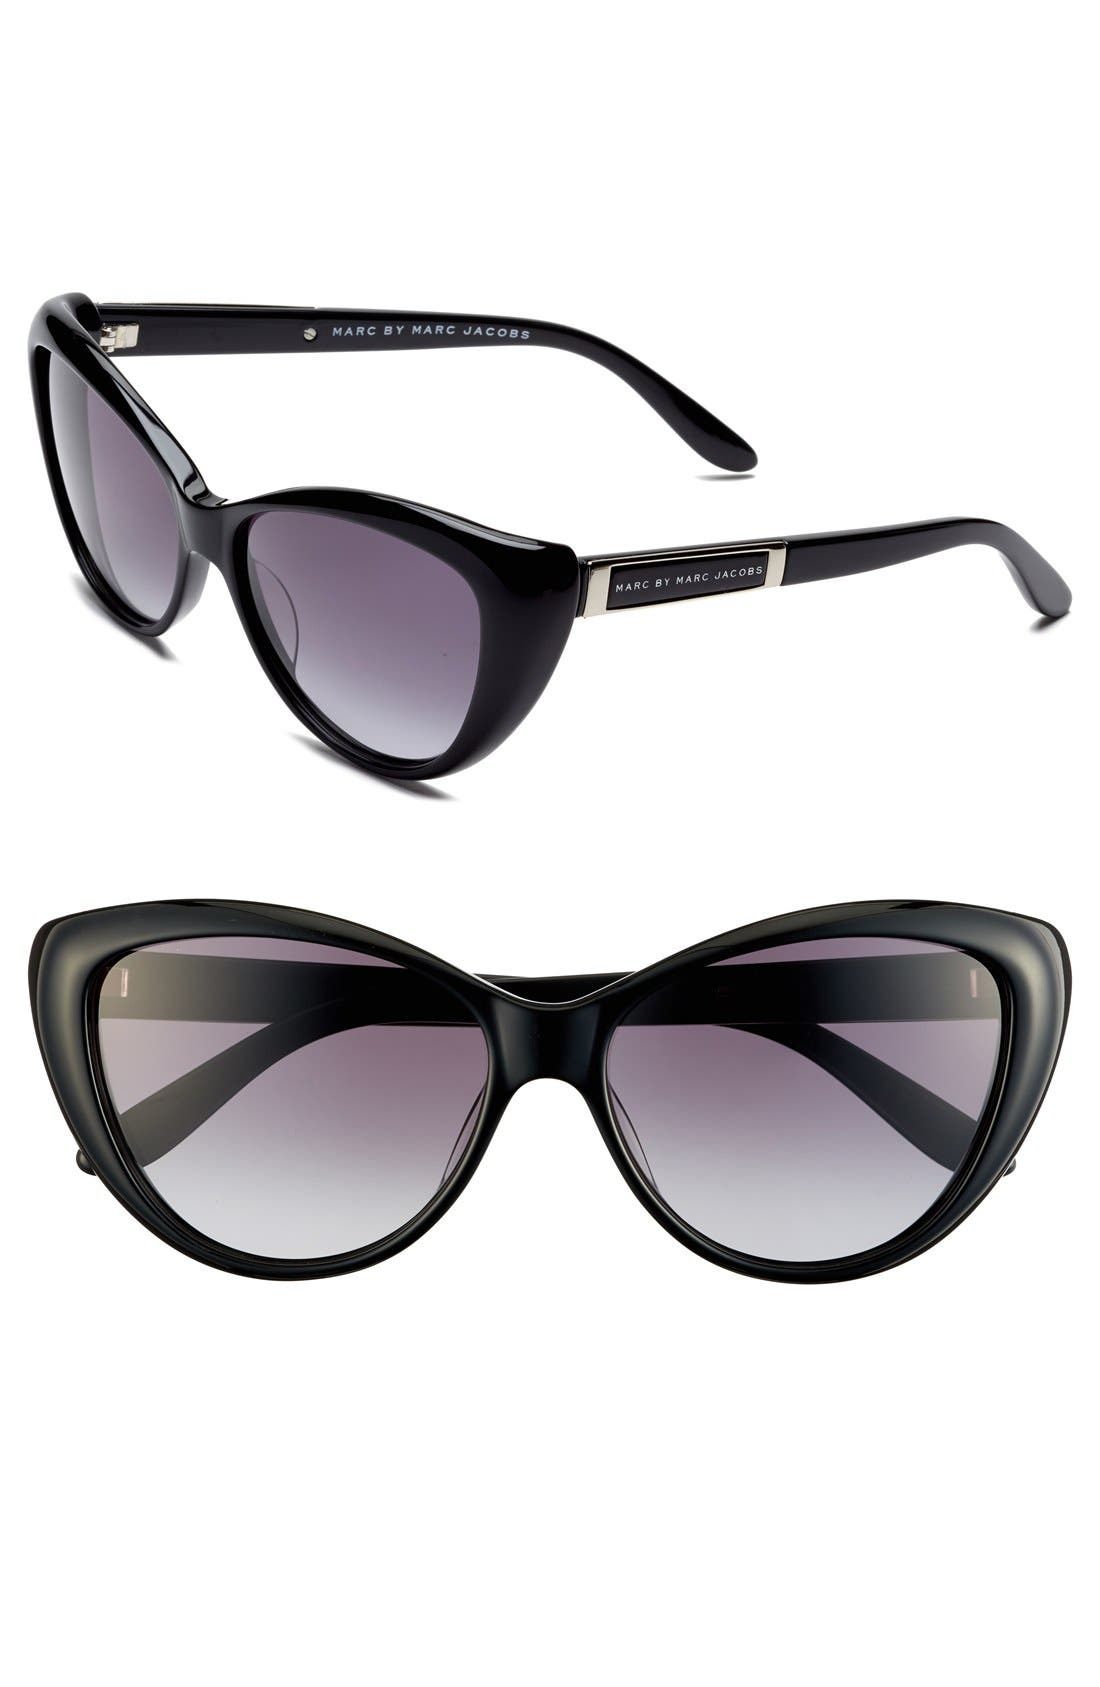 Main Image - MARC BY MARC JACOBS 56mm Cat Eye Sunglasses